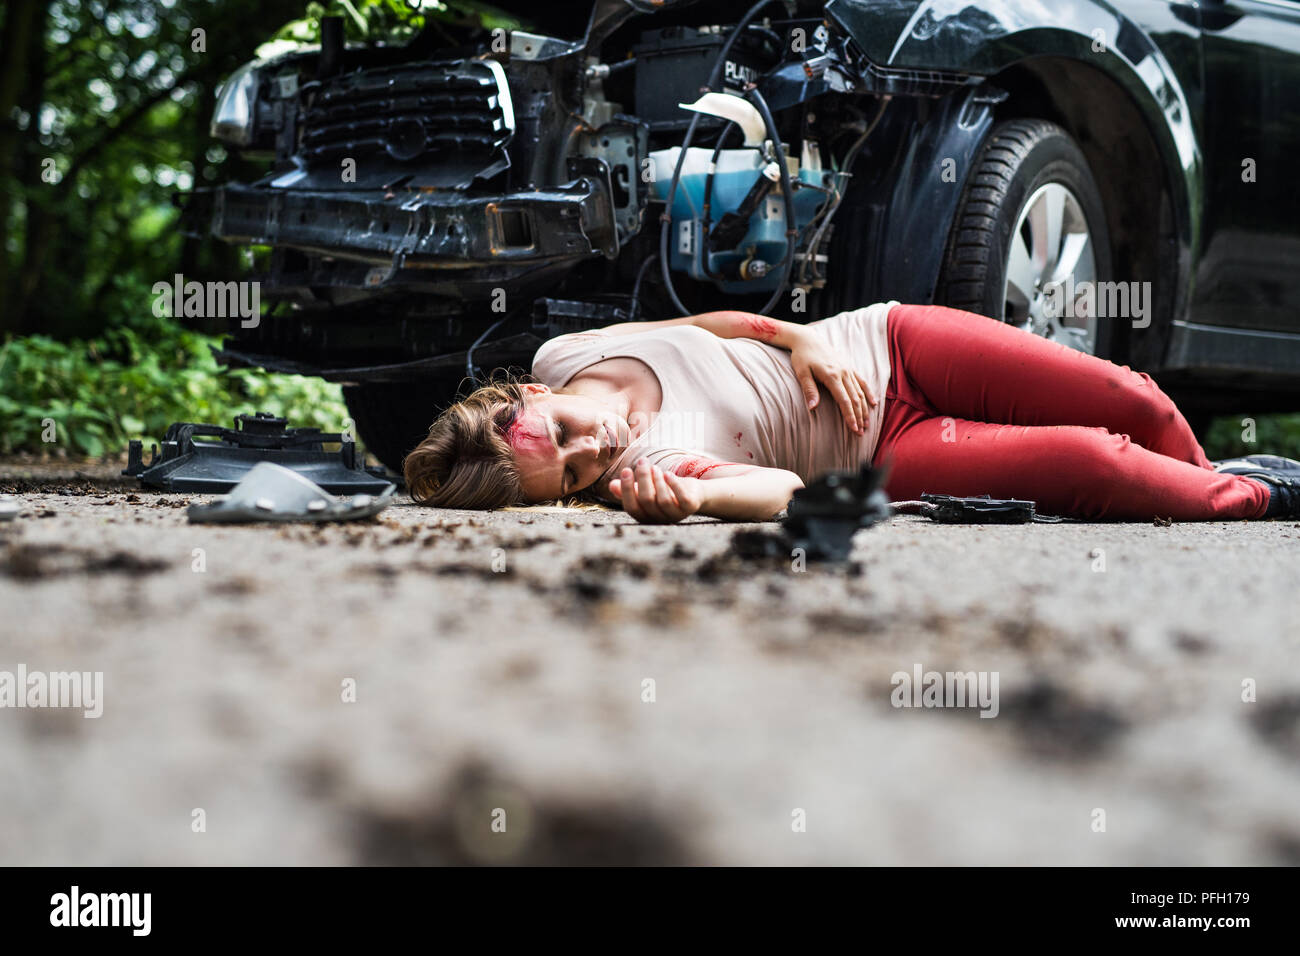 Young Injured Woman Lying In Blood On The Road Unconscious A Car